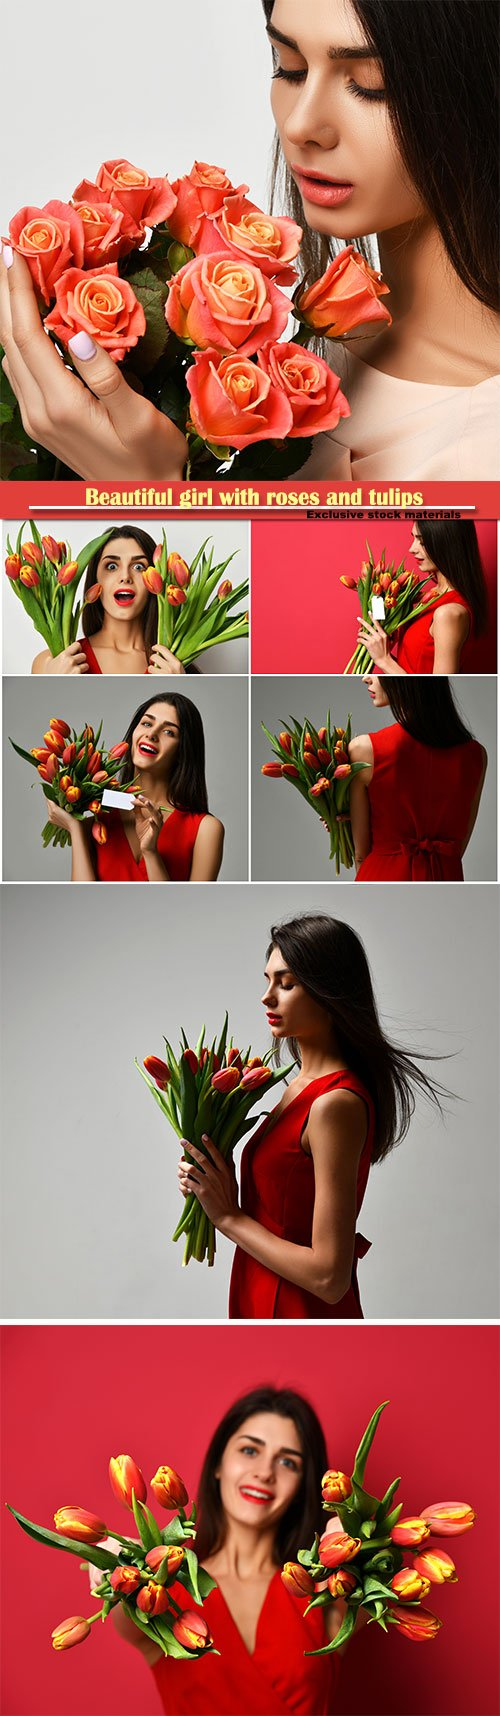 Beautiful girl with roses and tulips